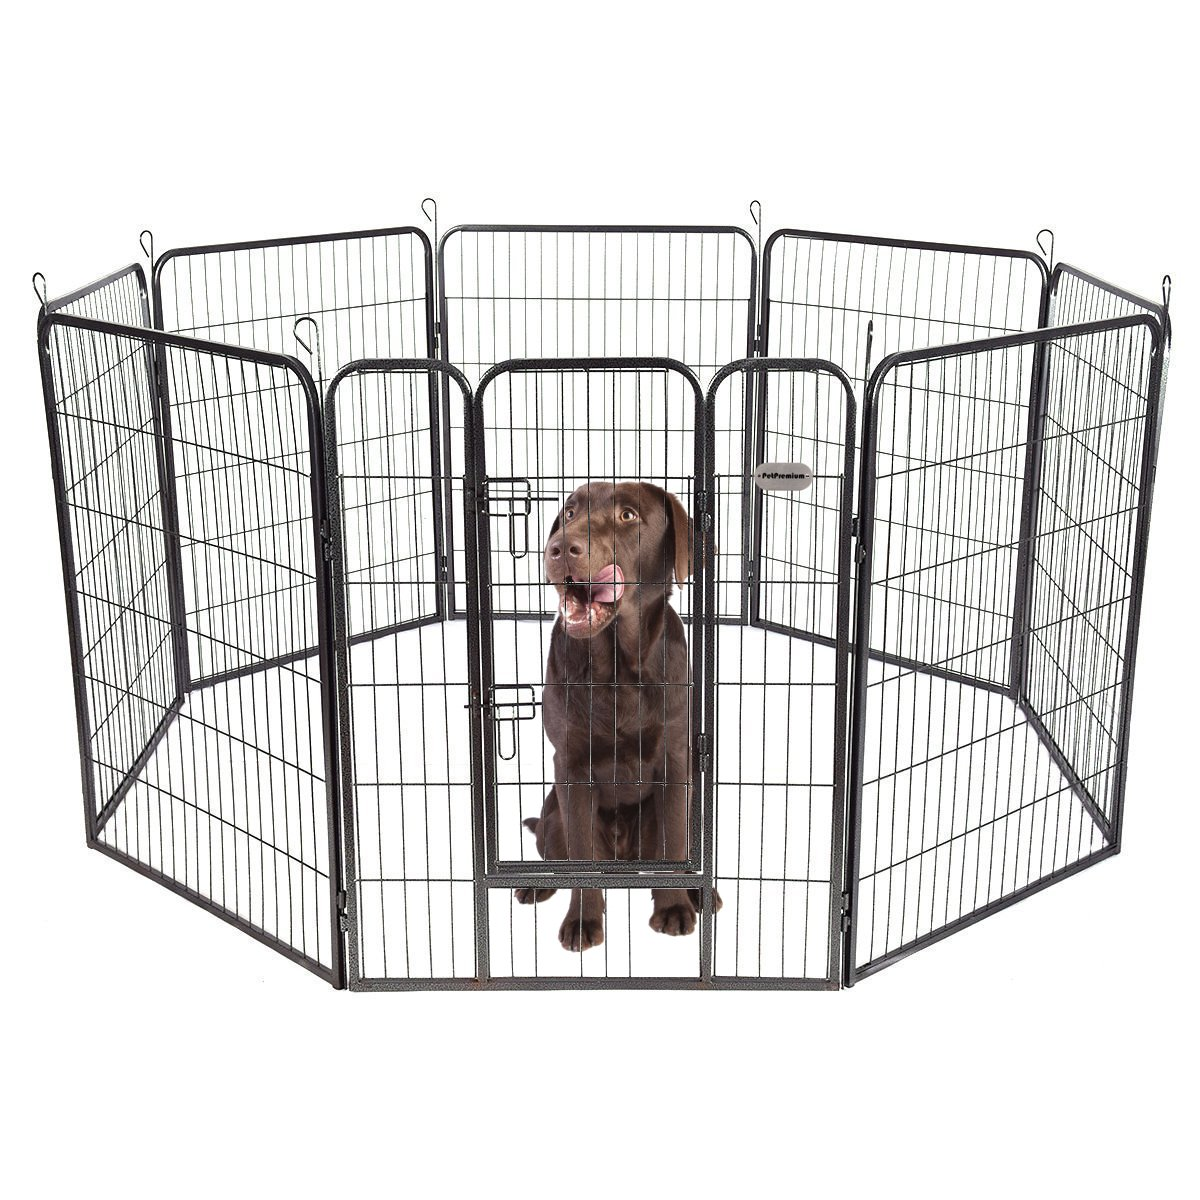 PetPremium Dog Pen Metal Fence Gate Portable Outdoor RV Play Yard | Heavy Duty Outside Pet Large Playpen Exercise | Indoor Puppy Kennel Cage Crate Enclosures | 40'' Height 8 Panel